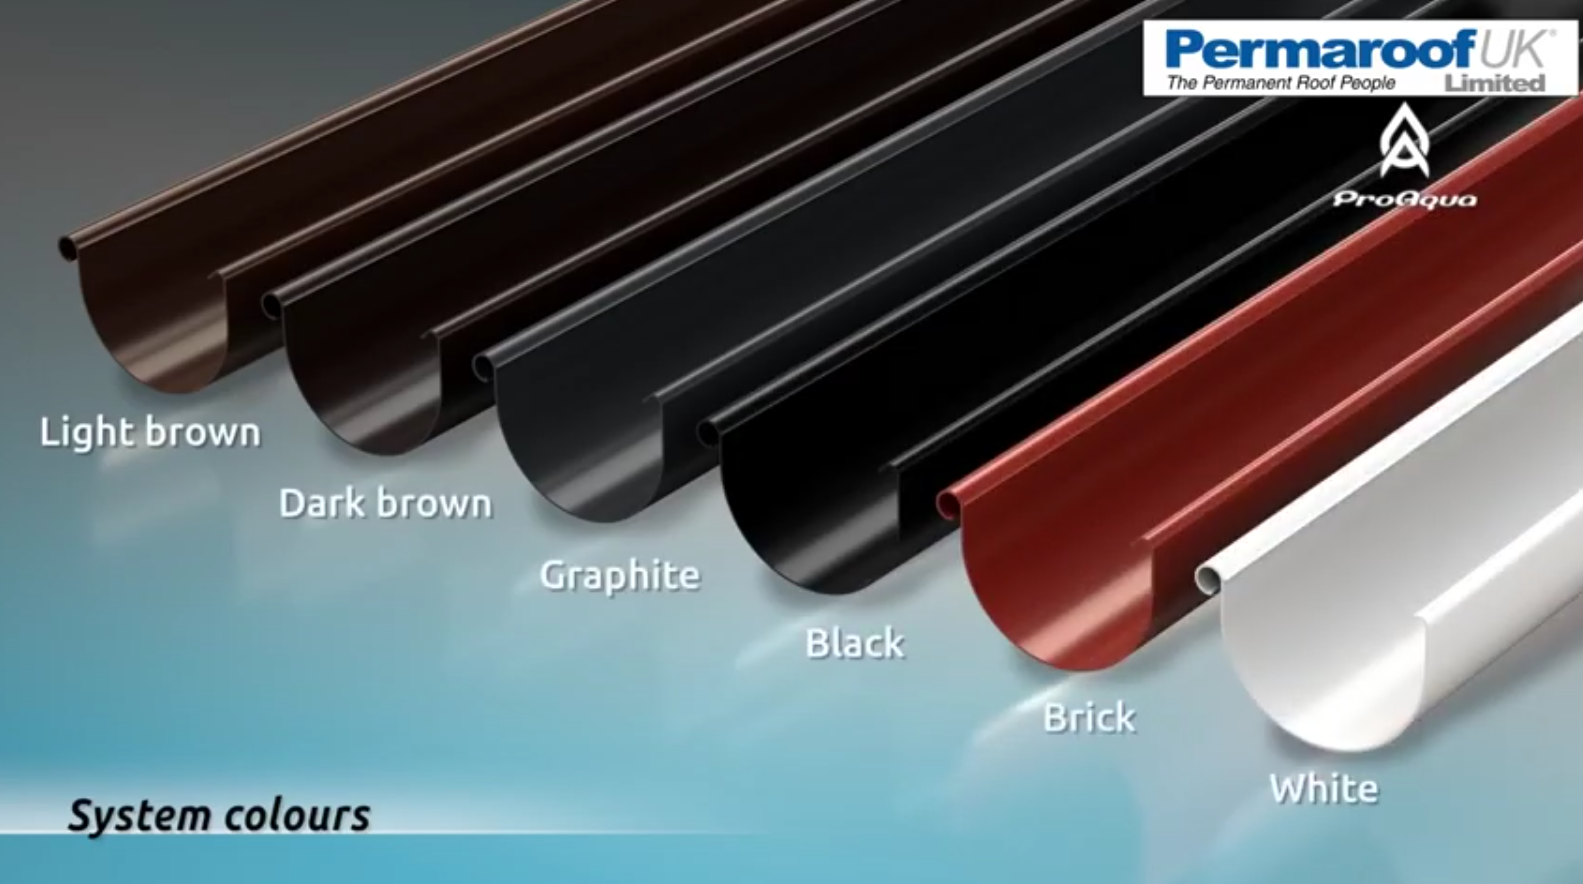 Pro Aqua PVC Gutter Systems | Permaroof EPDM Roofing